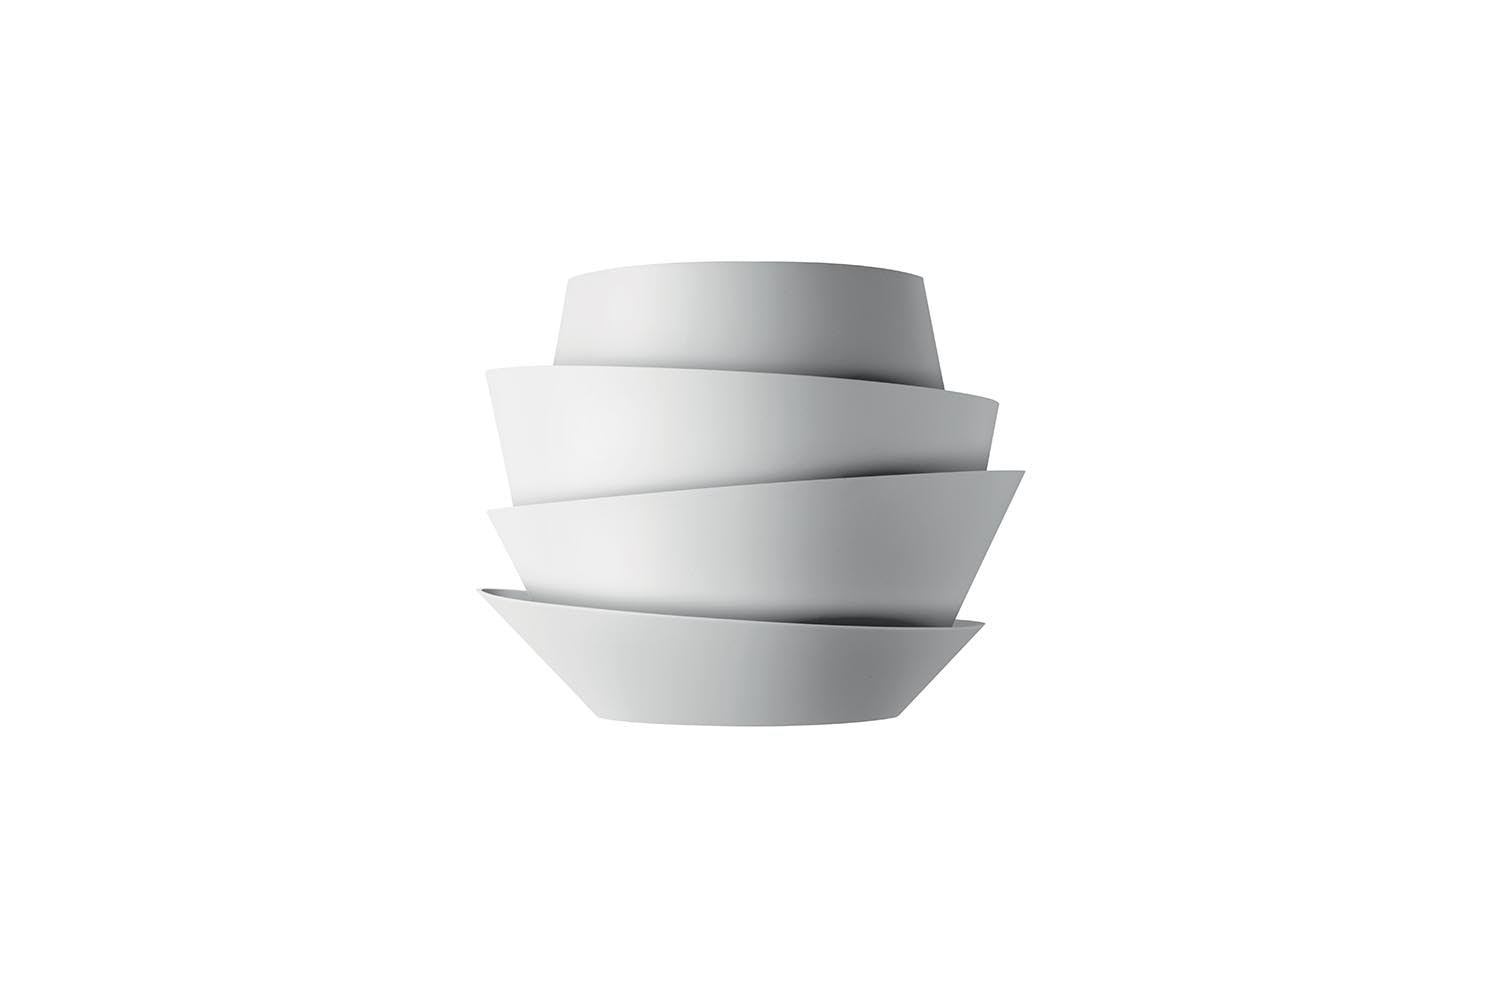 Le Soleil Wall Lamp by Vicente Garcia Jimenez for Foscarini